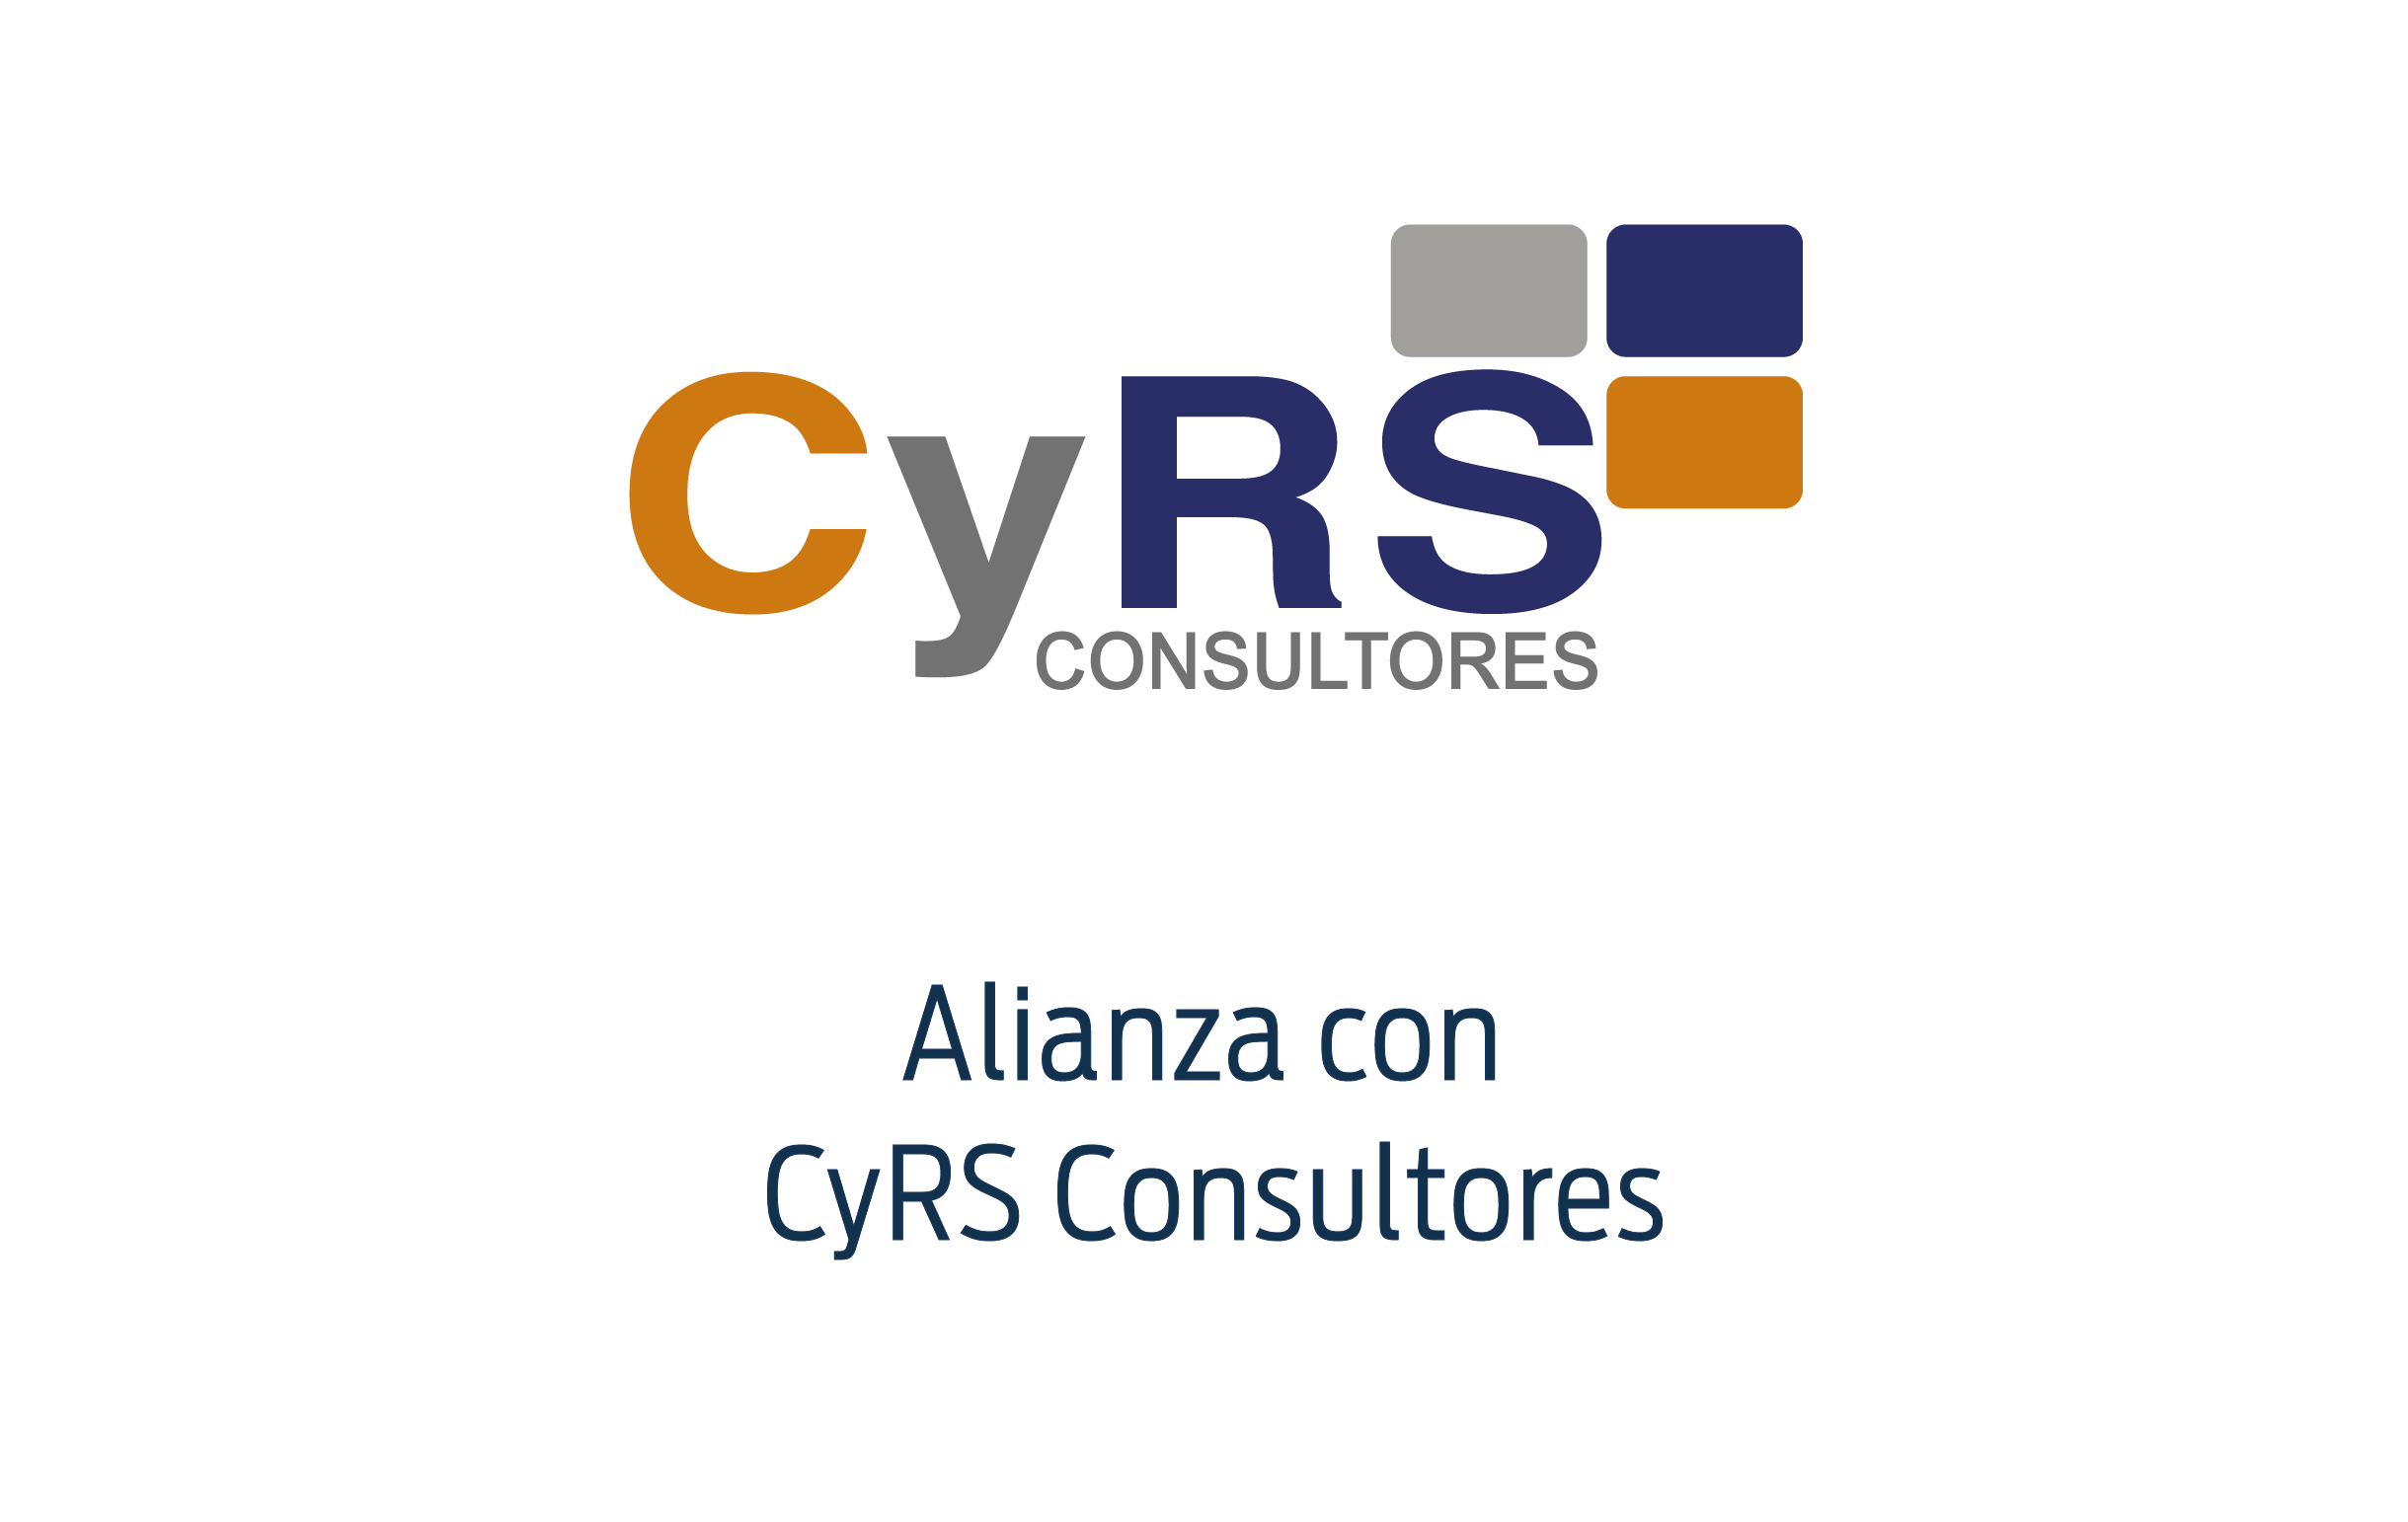 CyRS Consultores